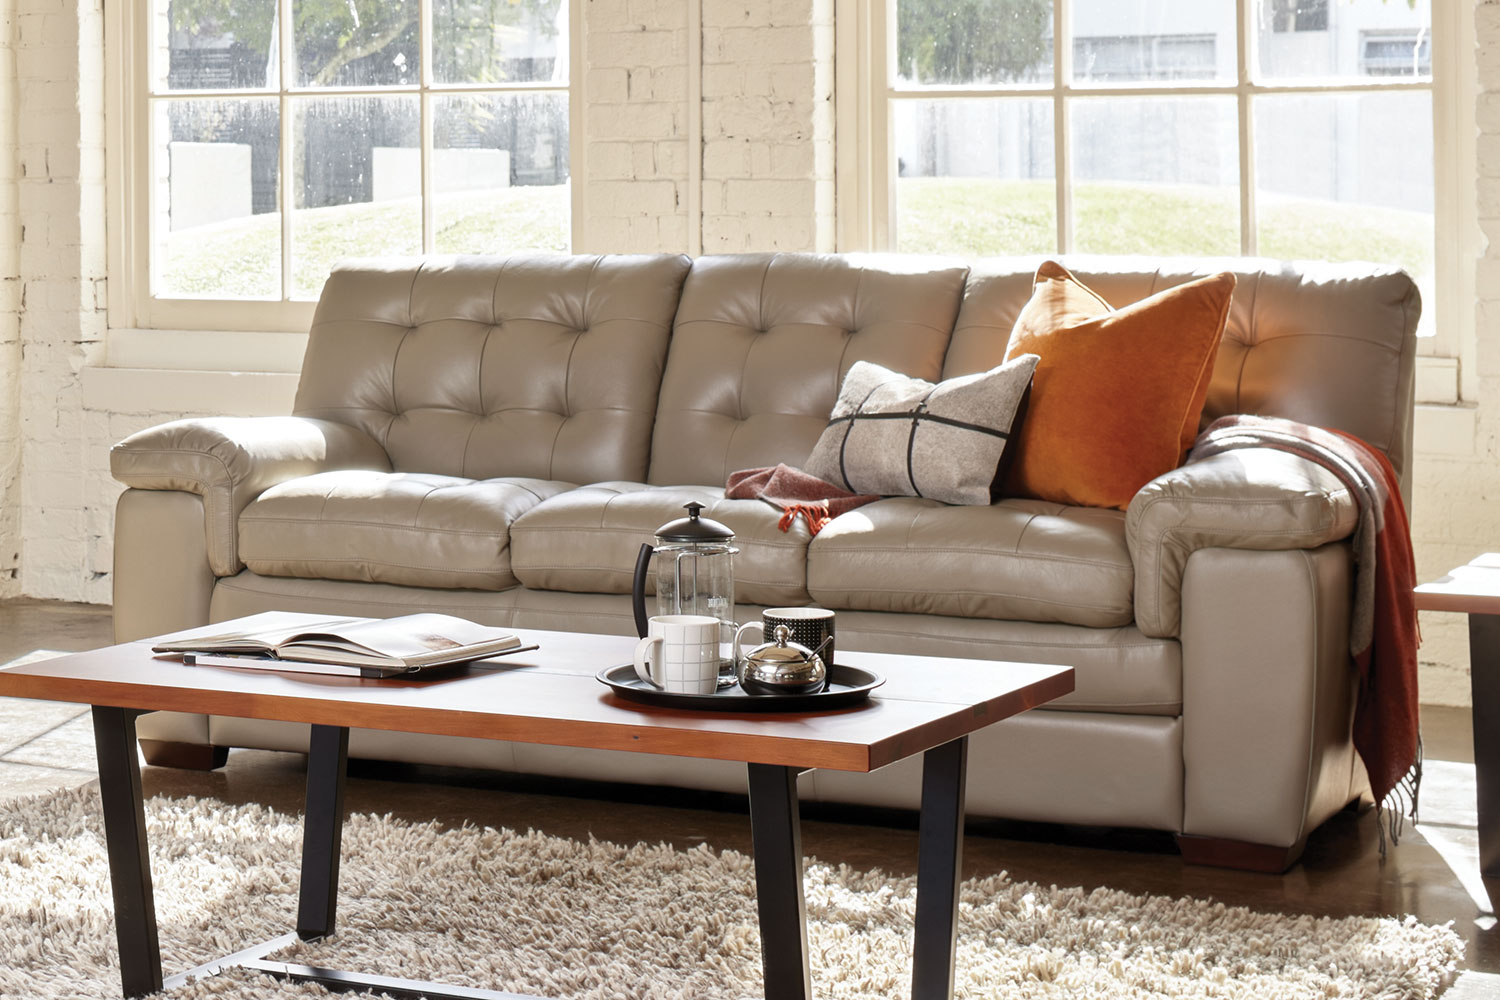 Leather Sofa La Z Boy Cullen 3 Seater Leather Sofa By La Z Boy